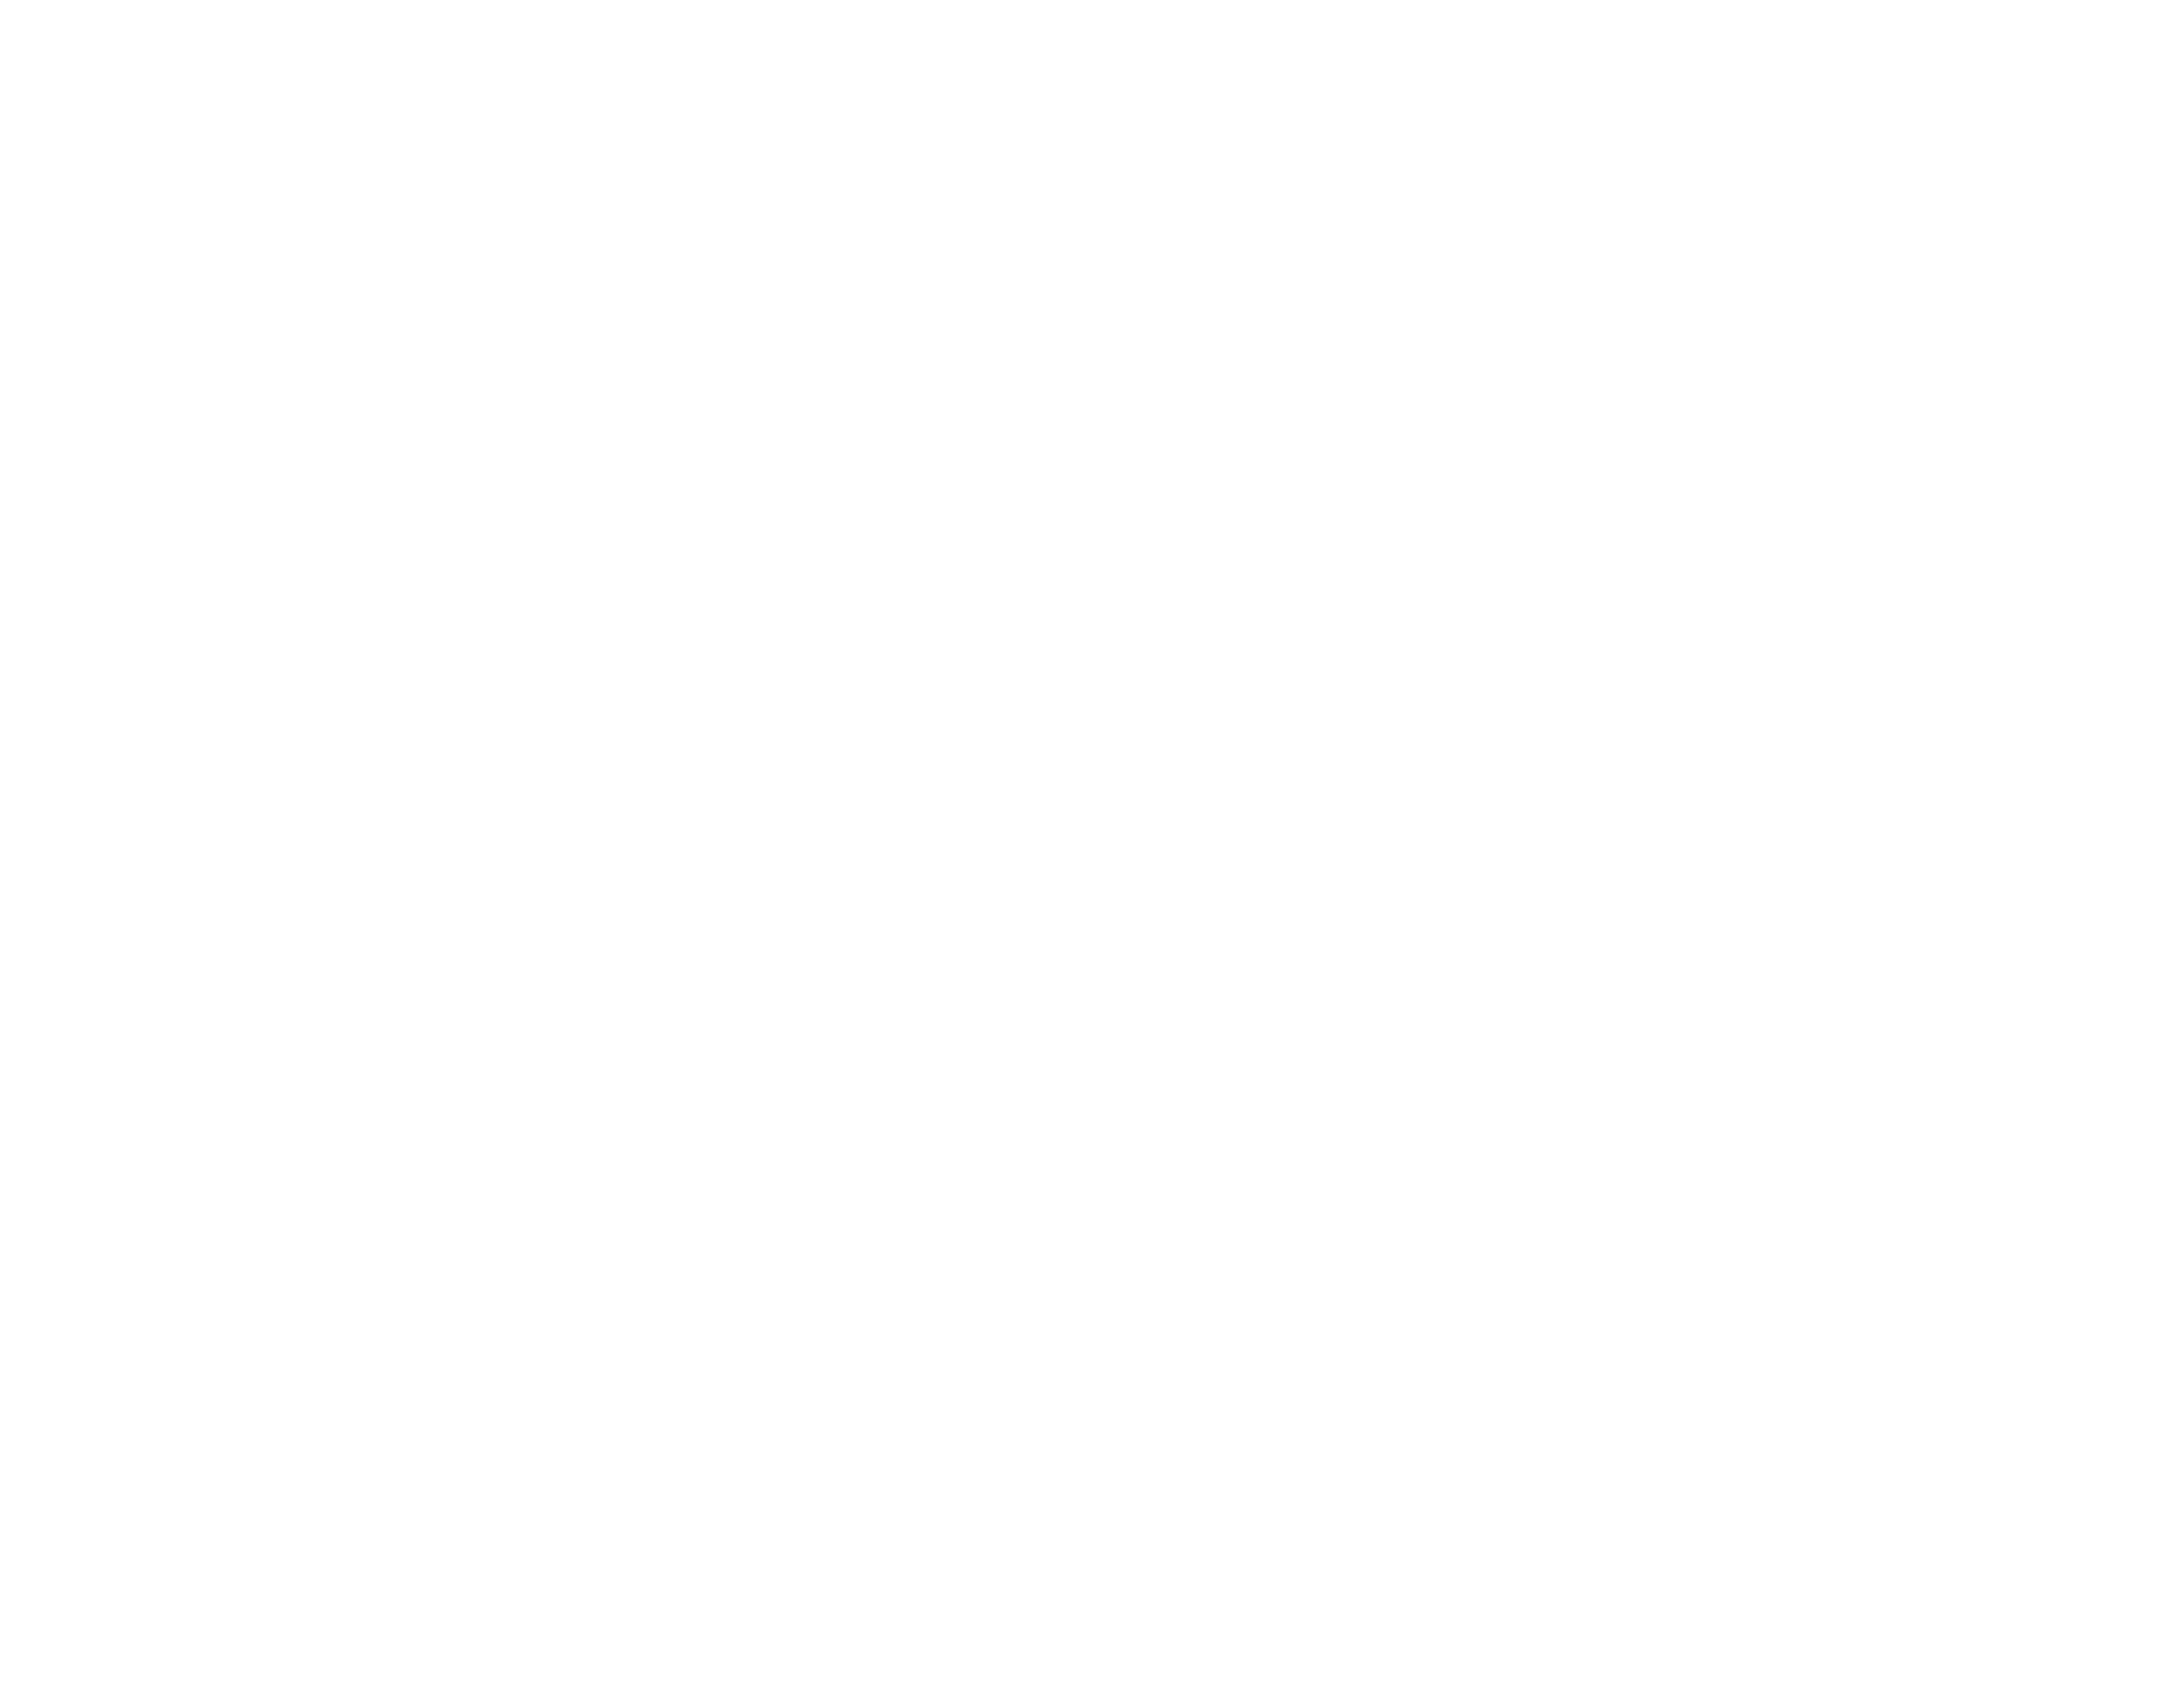 FOREST HILL UMC